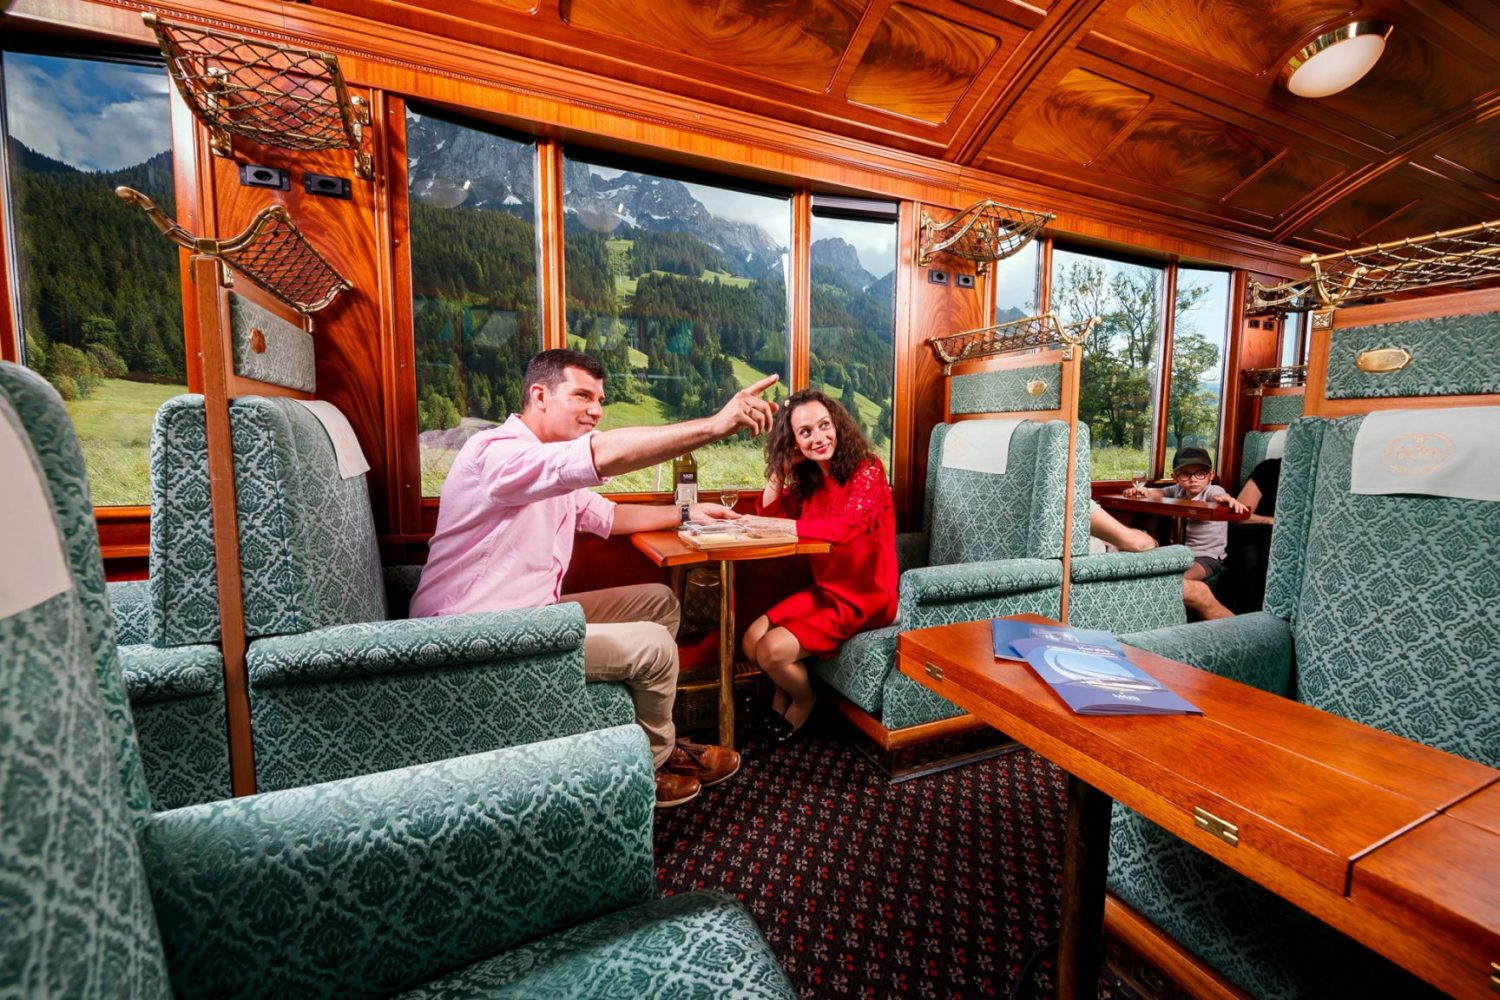 GoldenPass Belle Epoque historische wagons